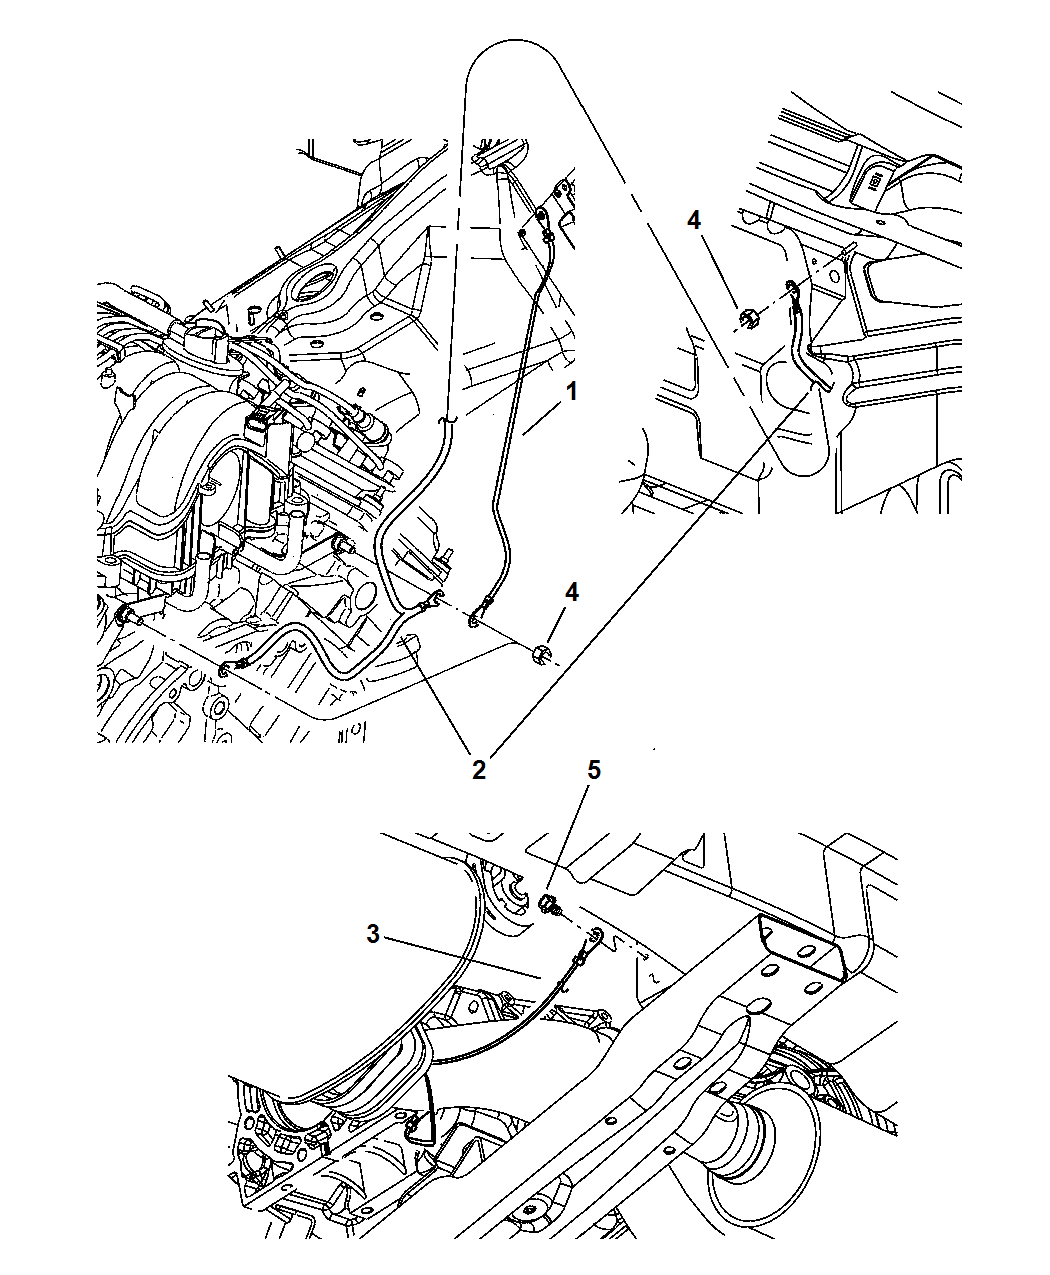 2005 Jeep Cherokee Engine Diagram - wiring diagram structure-central -  structure-central.eugeniovazzano.it | 2005 Jeep Grand Cherokee Engine Diagram |  | Eugenio Vazzano